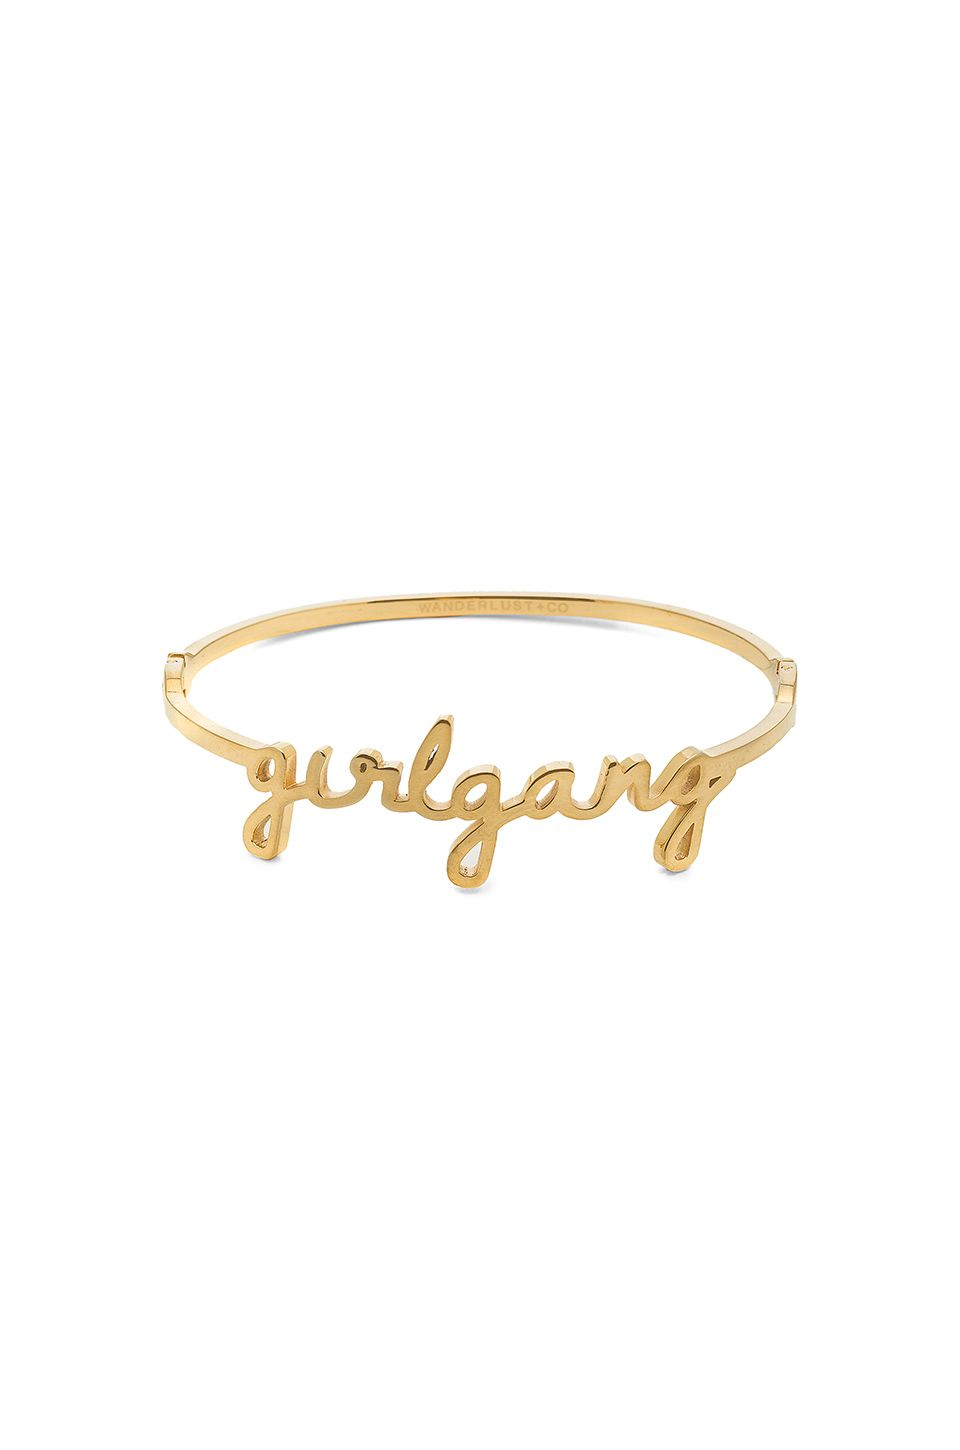 Wanderlust co girl gang bangle in gold little things that make